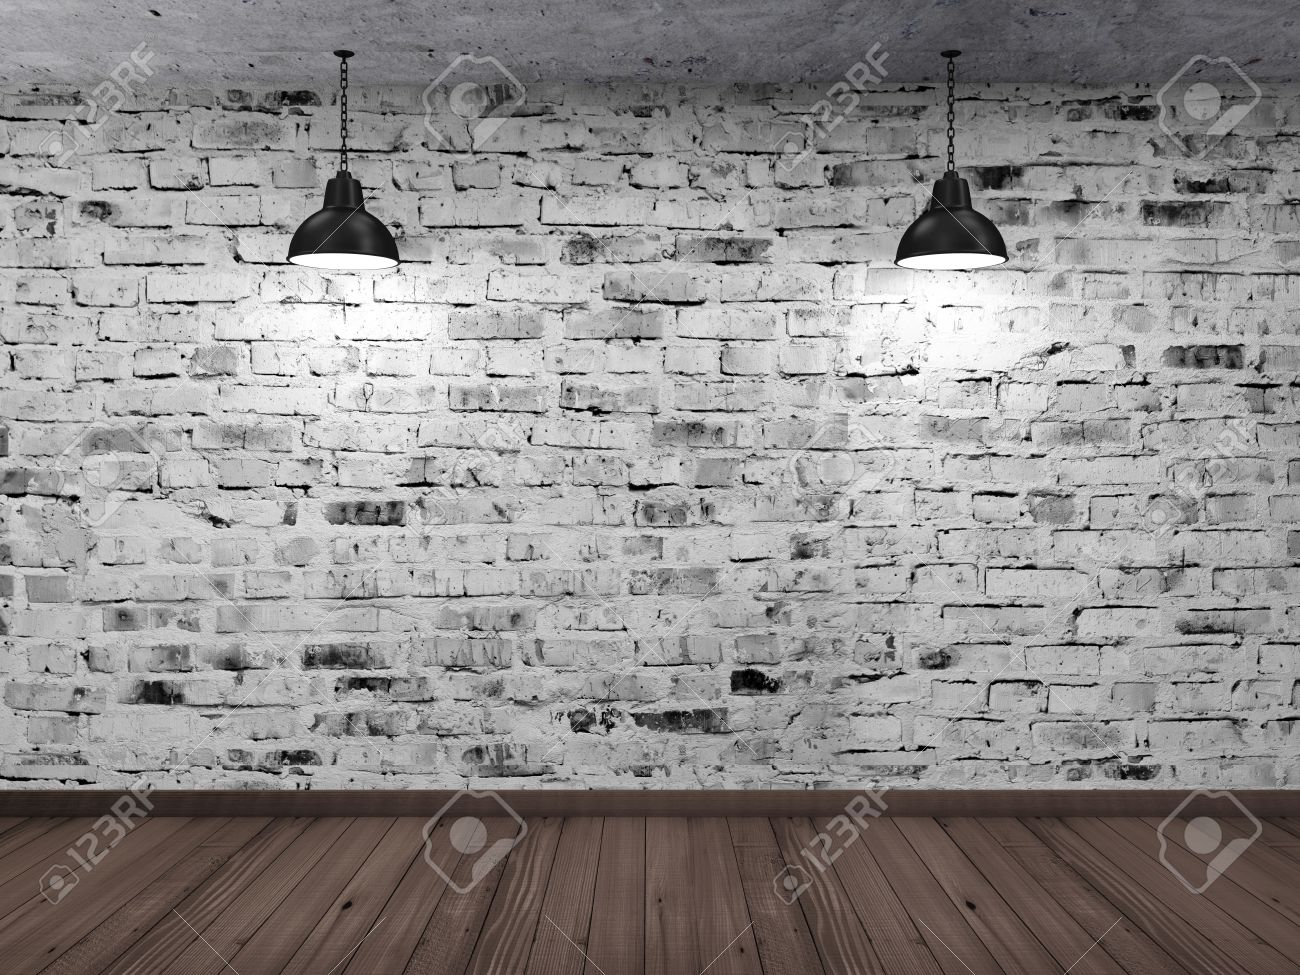 Black brick wall interior - Empty 3d Room Interior With White Grunge Brick Wall Wooden Floor And Hanging Black Lamps Stock